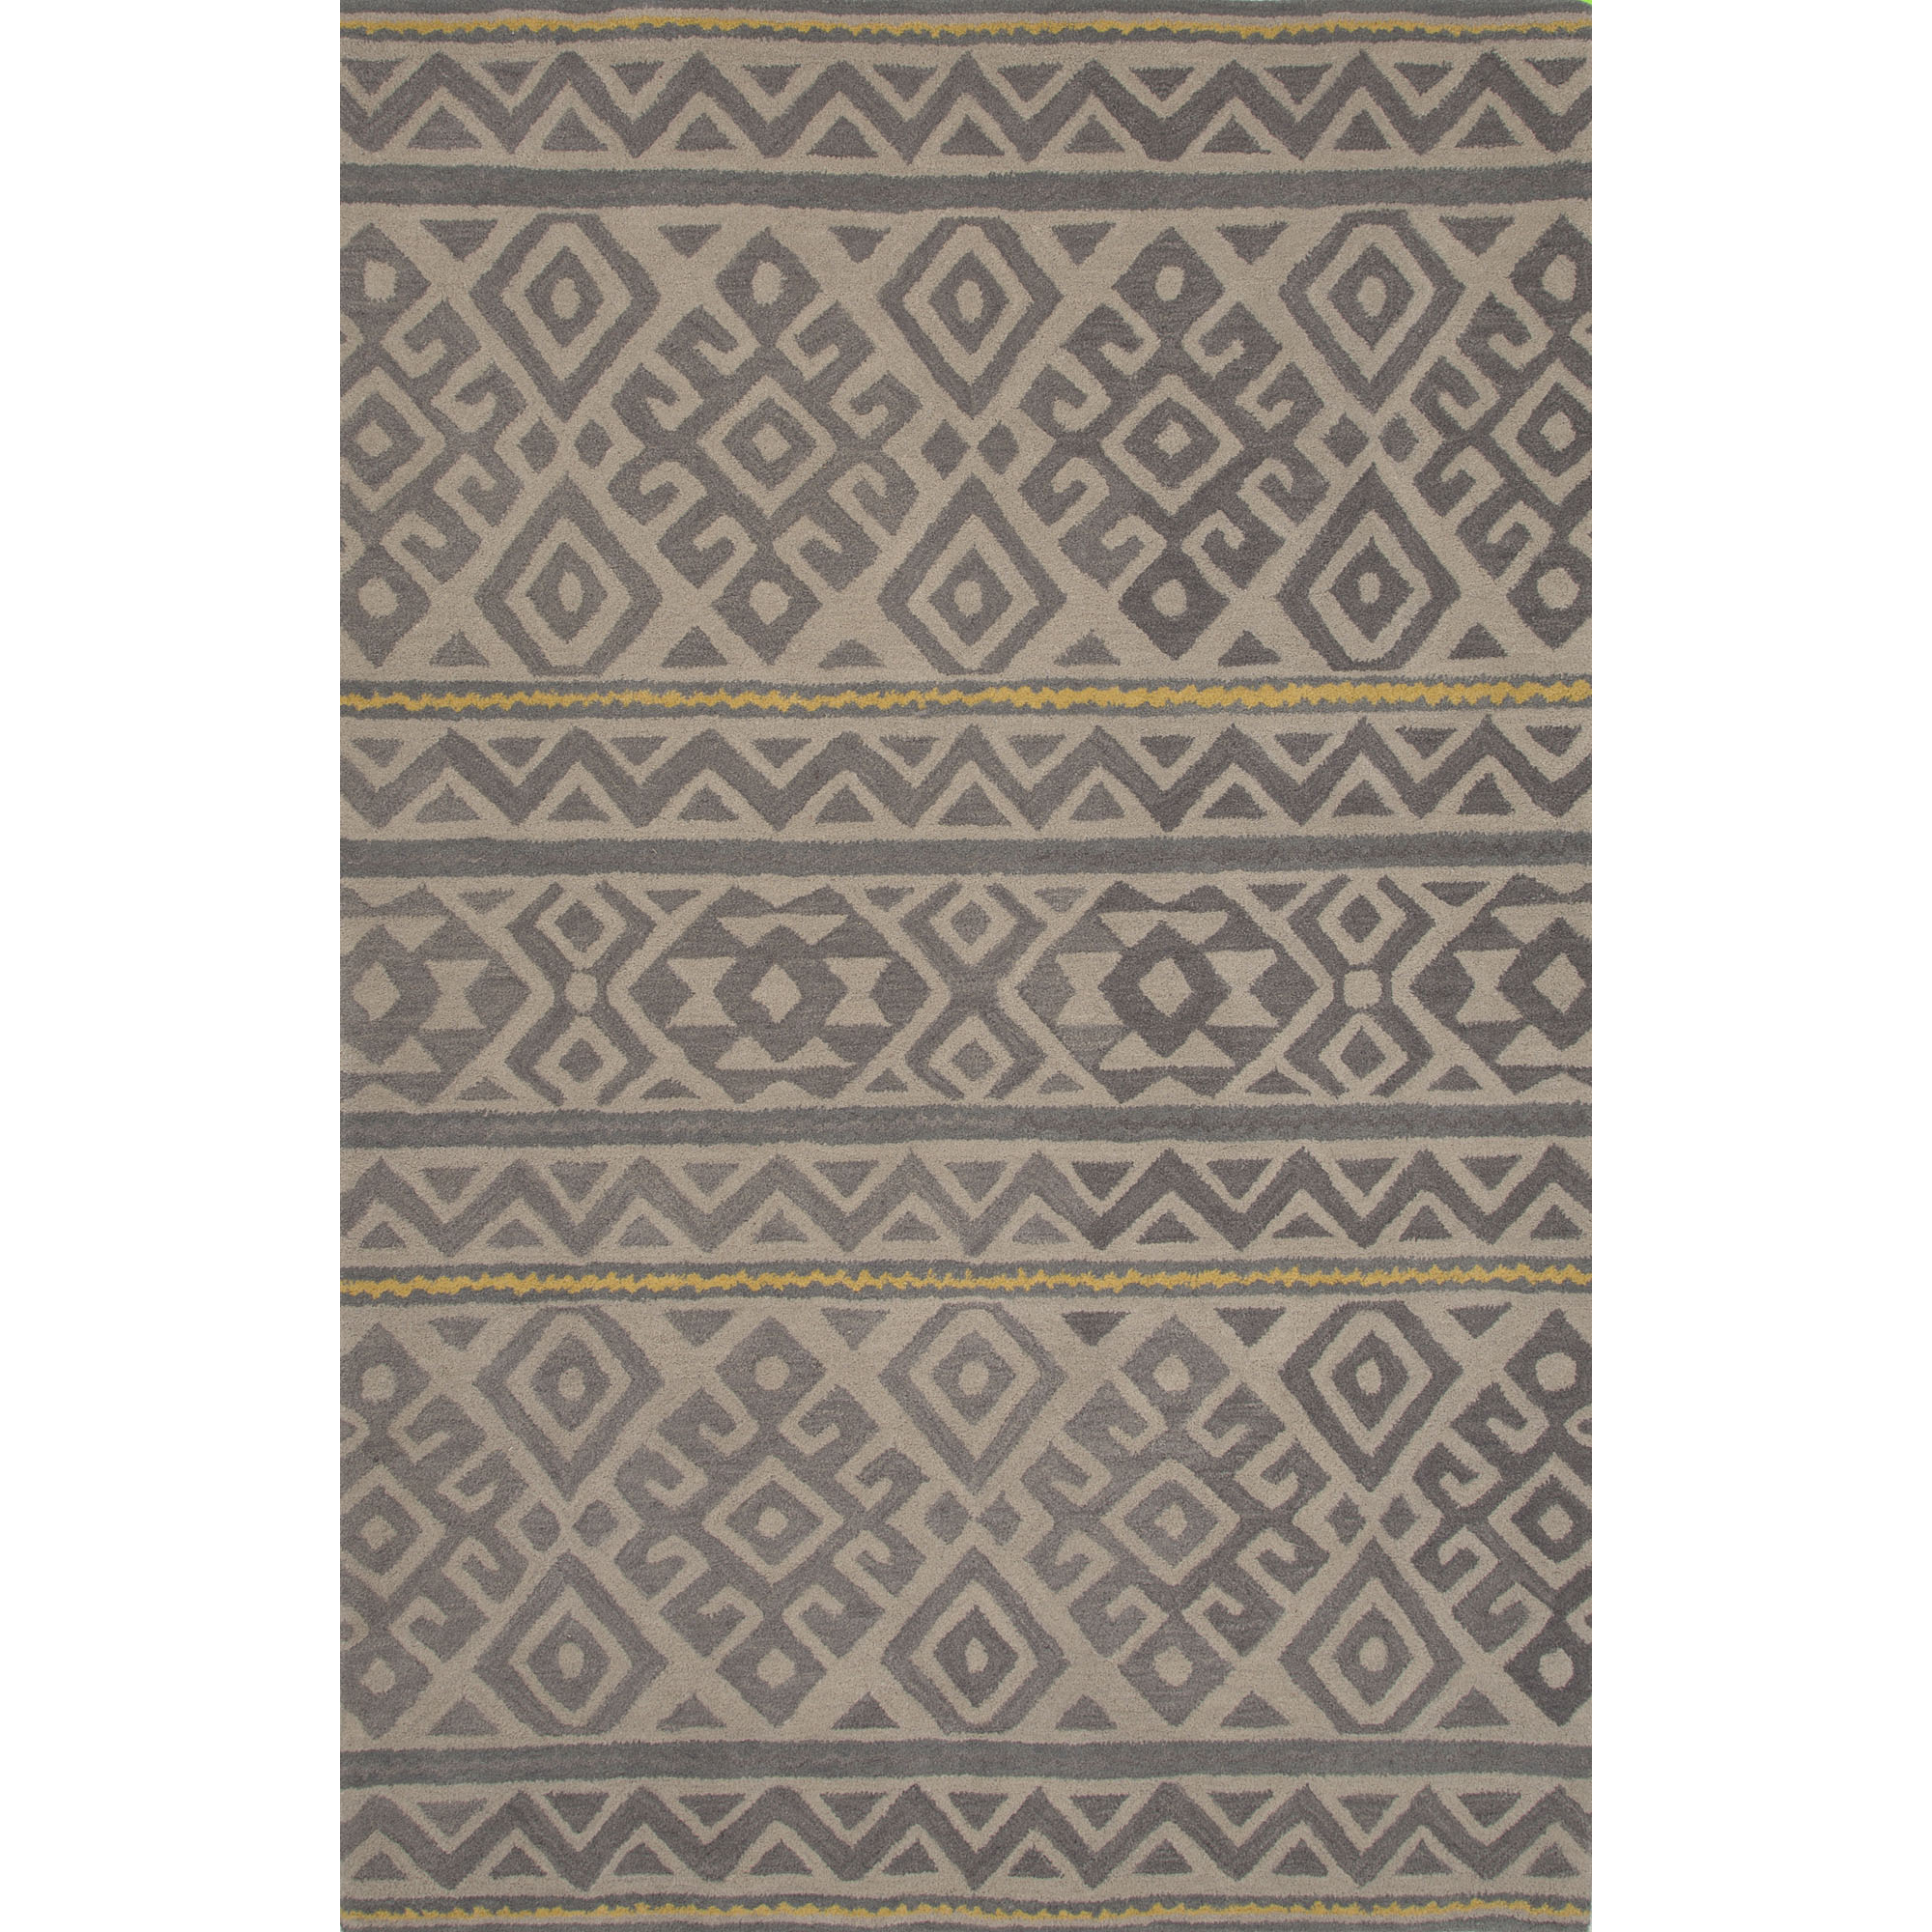 JAIPUR Rugs Traditions Made Modern Tufted 2 x 3 Rug - Item Number: RUG122208